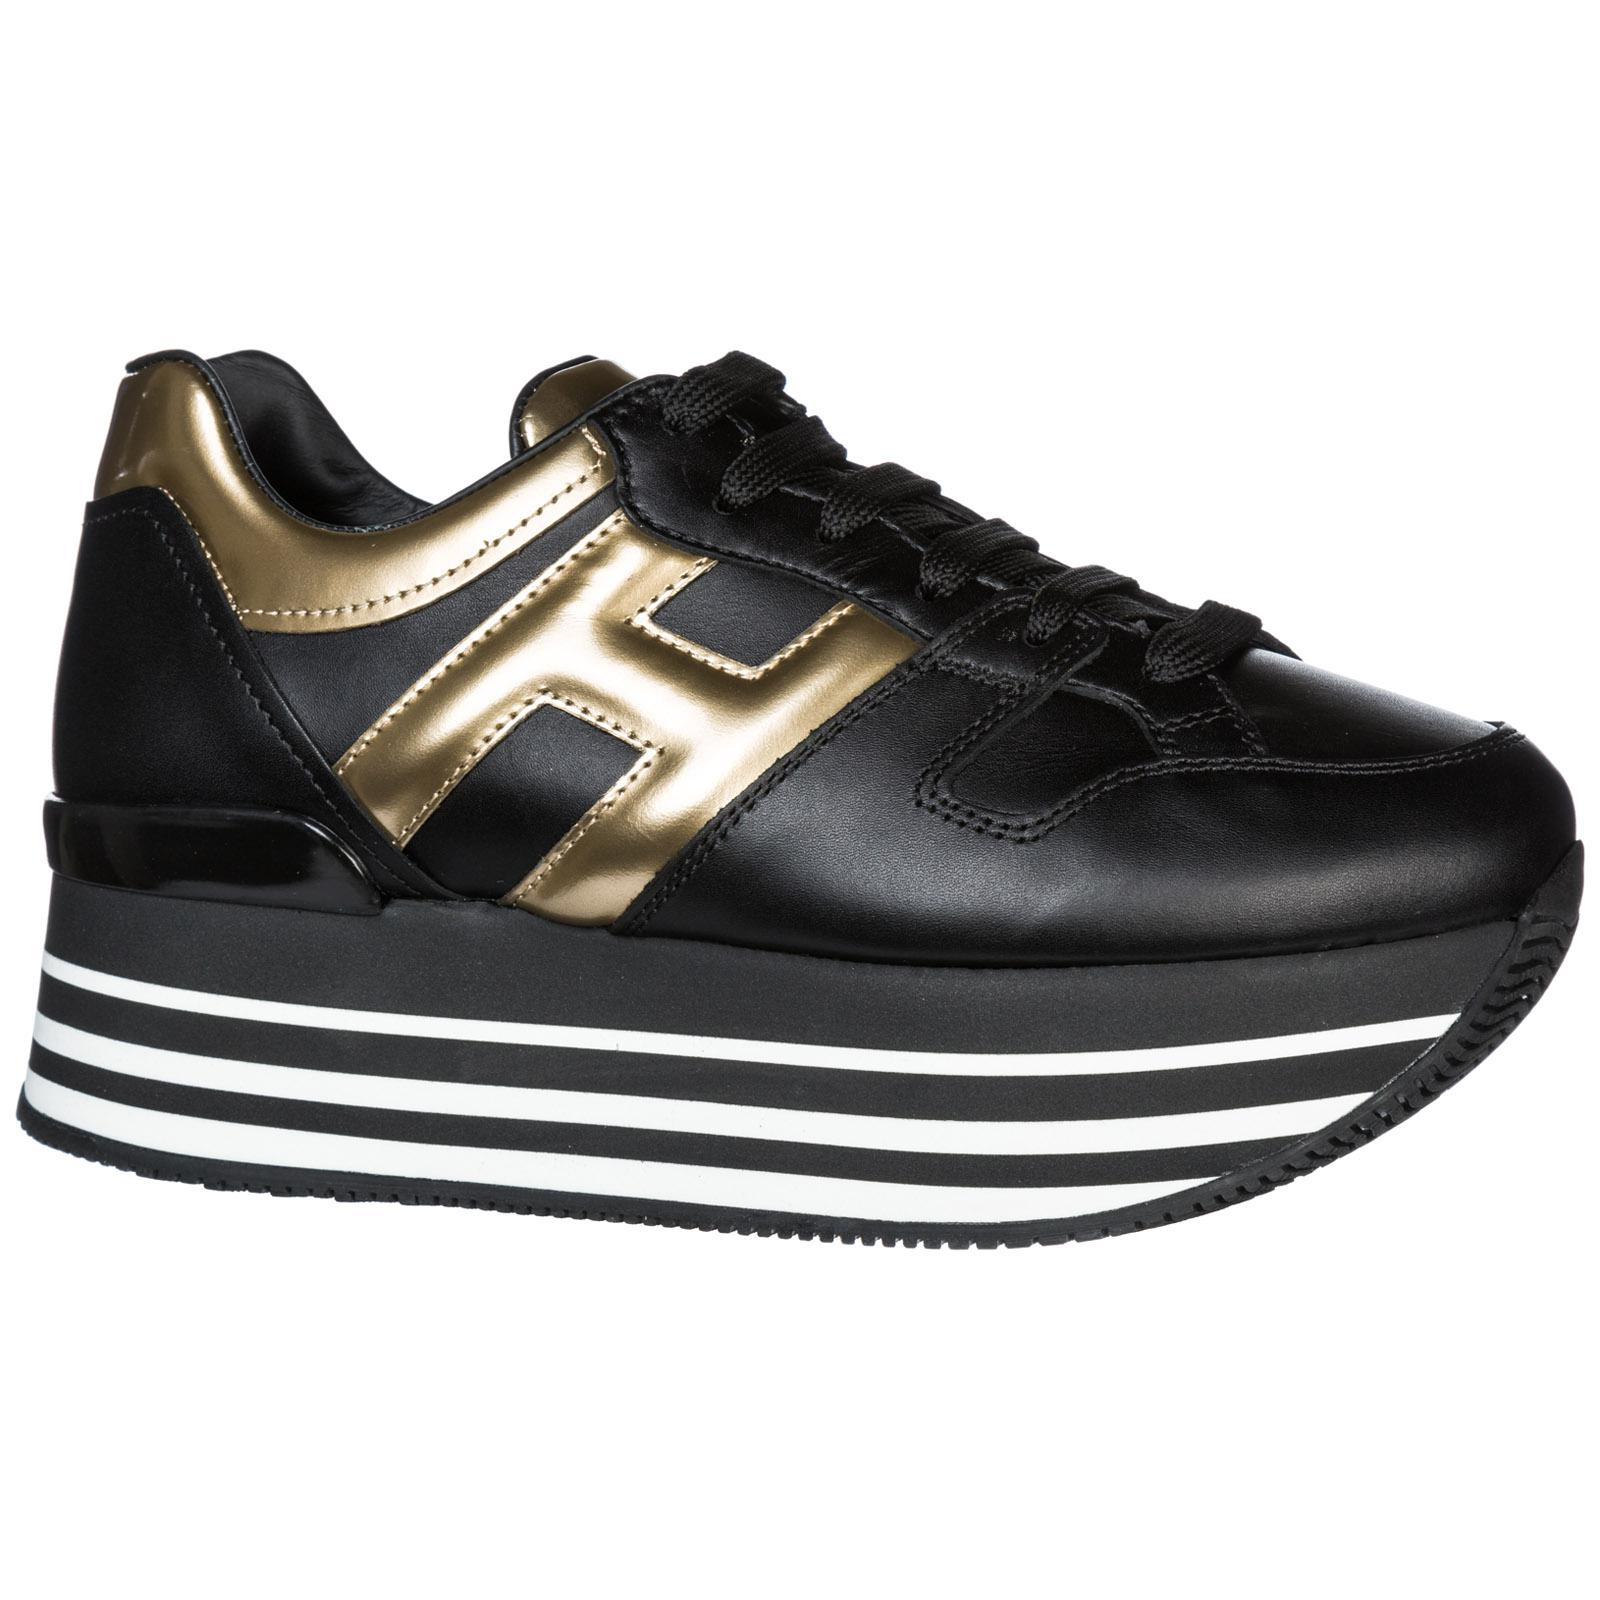 Hogan Leather Maxi H222 Black And Golden Sneakers - Lyst